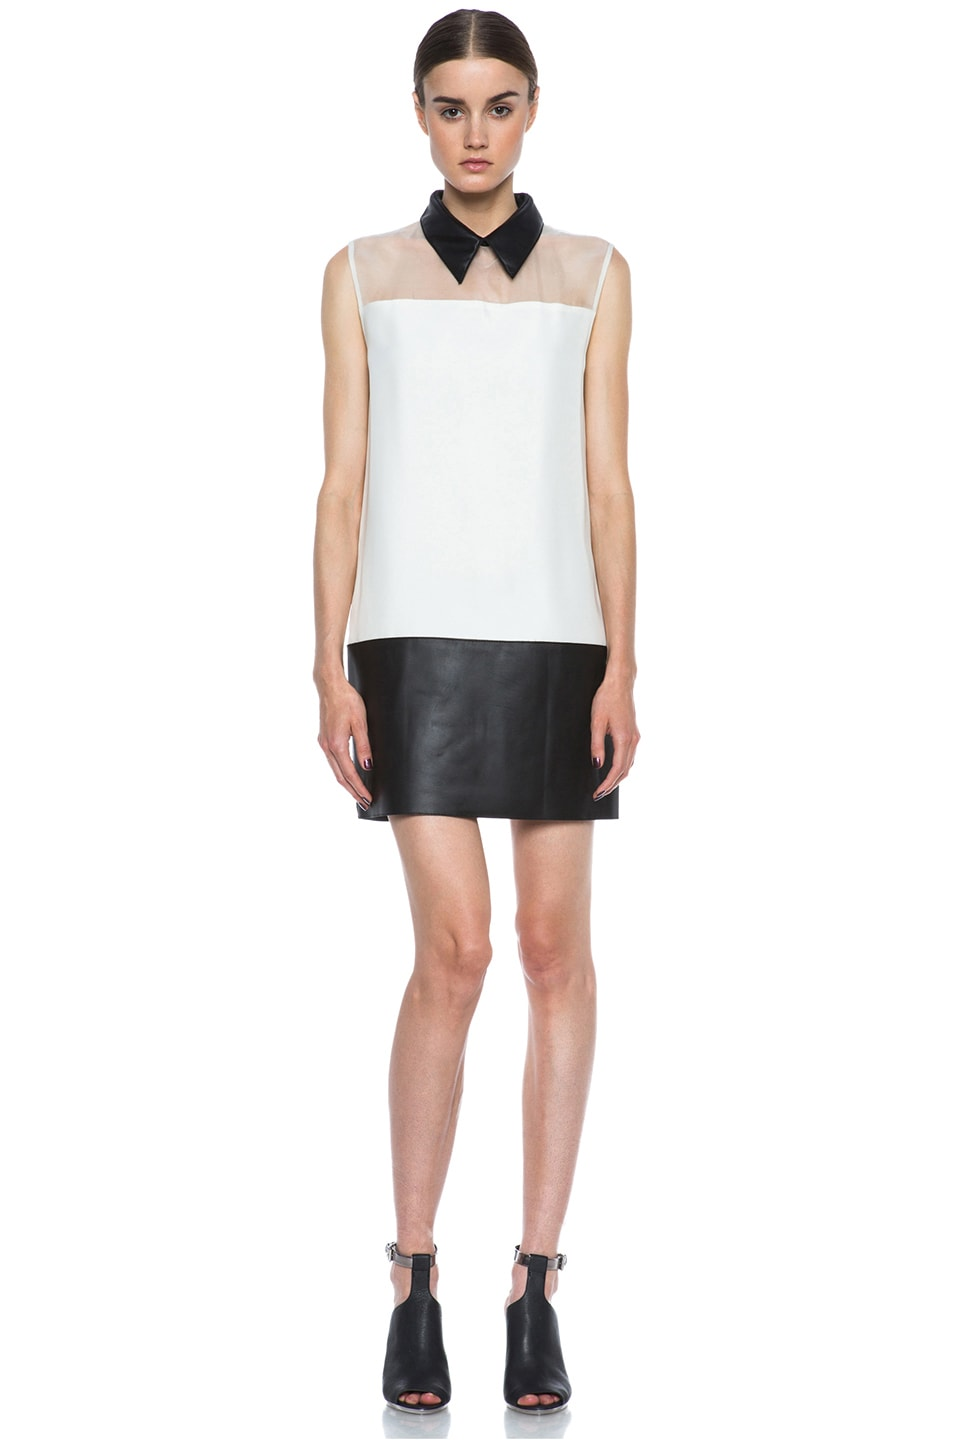 Image 1 of 3.1 phillip lim Tuxedo Viscose Shift Dress in Alabaster & Black